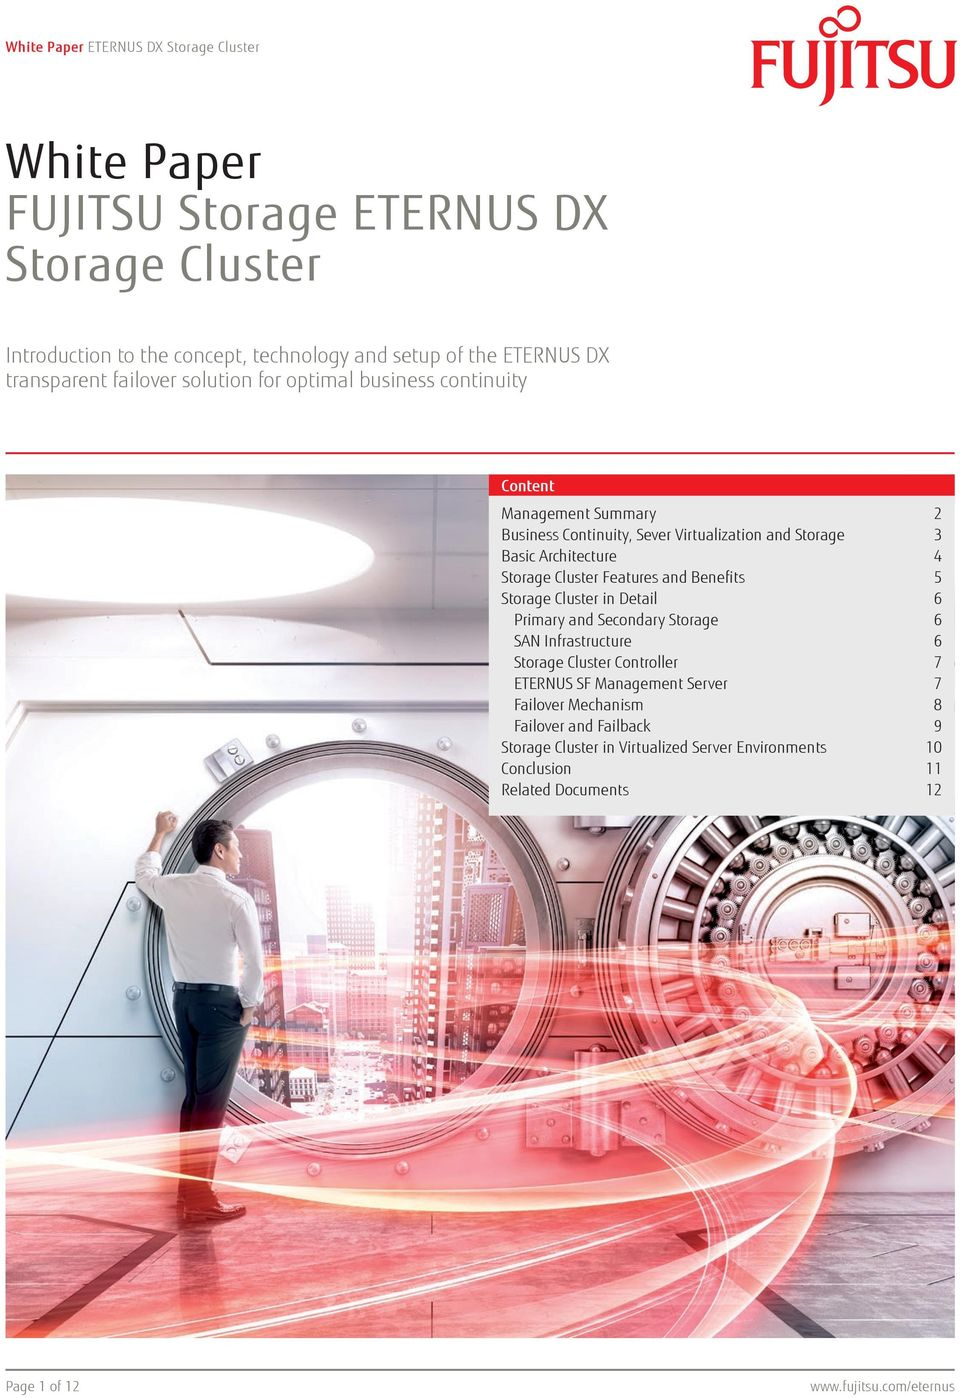 Storage Cluster Features and Benefits 5 Storage Cluster in Detail 6 Primary and Secondary Storage 6 Infrastructure 6 7 ETERNUS SF Management